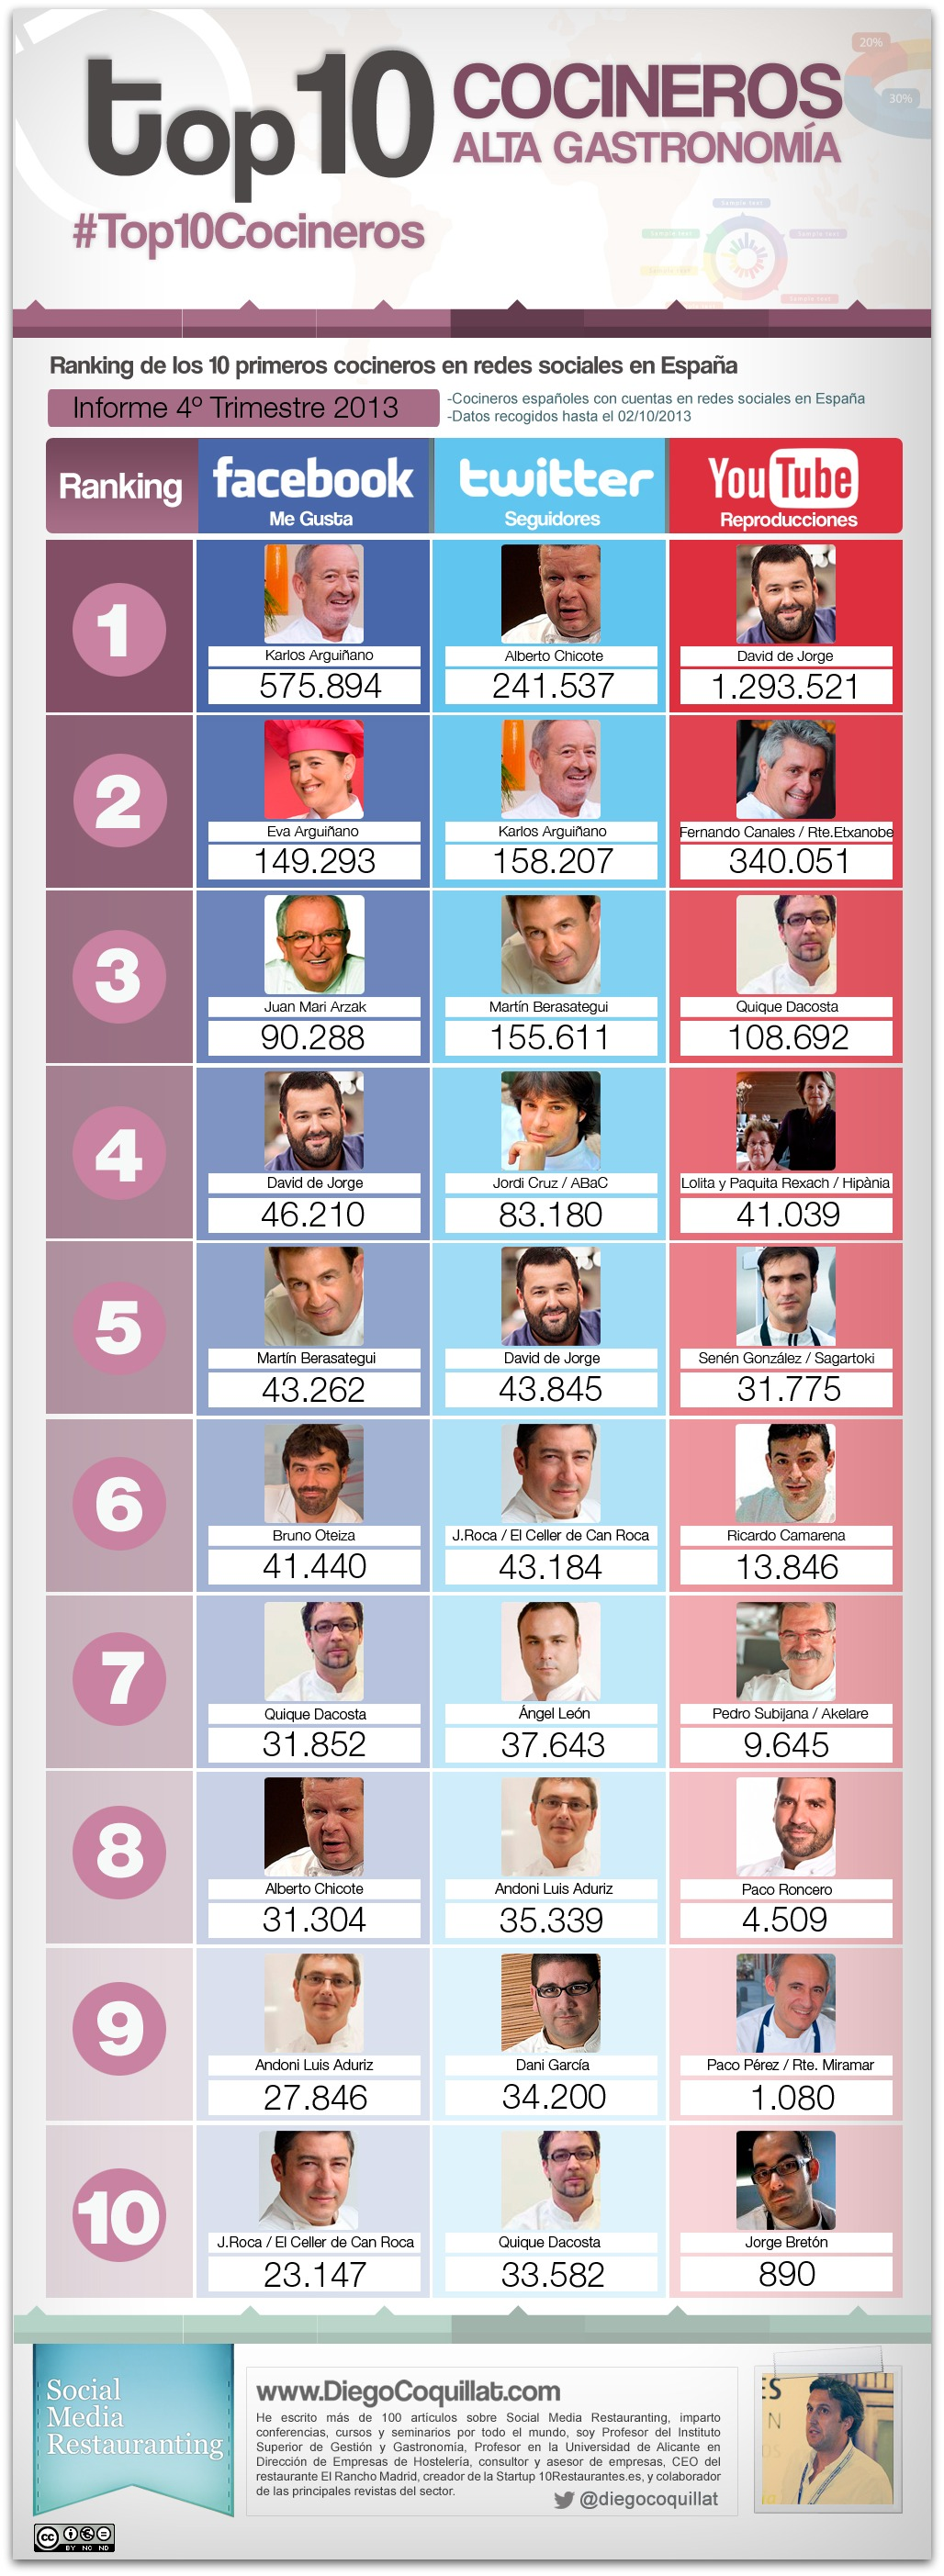 The best chefs in social networks 2013 in Spain